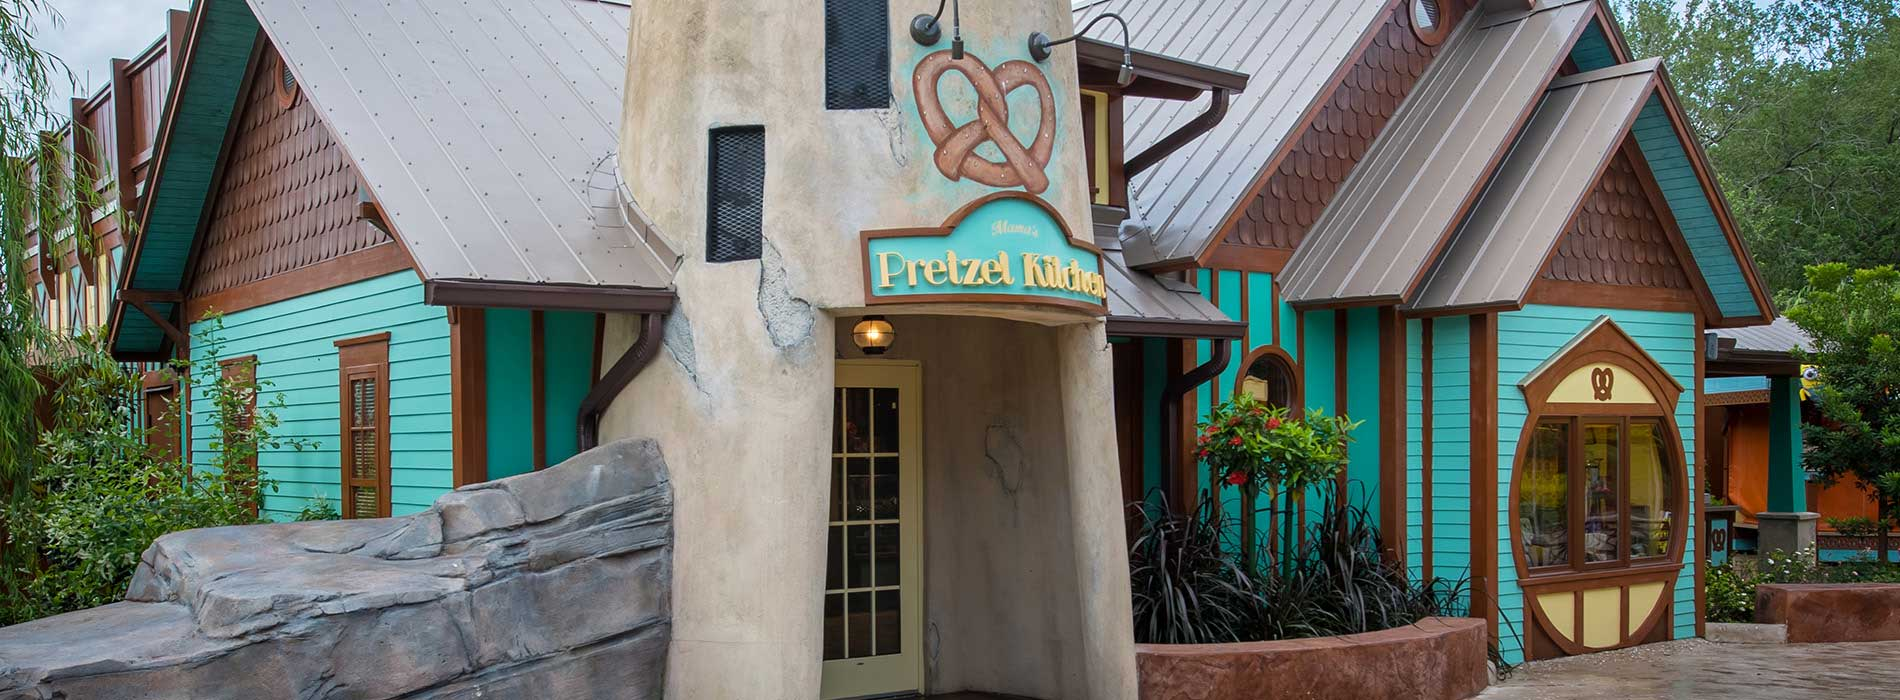 SeaWorld Orlando Mamas Pretzel Kitchen